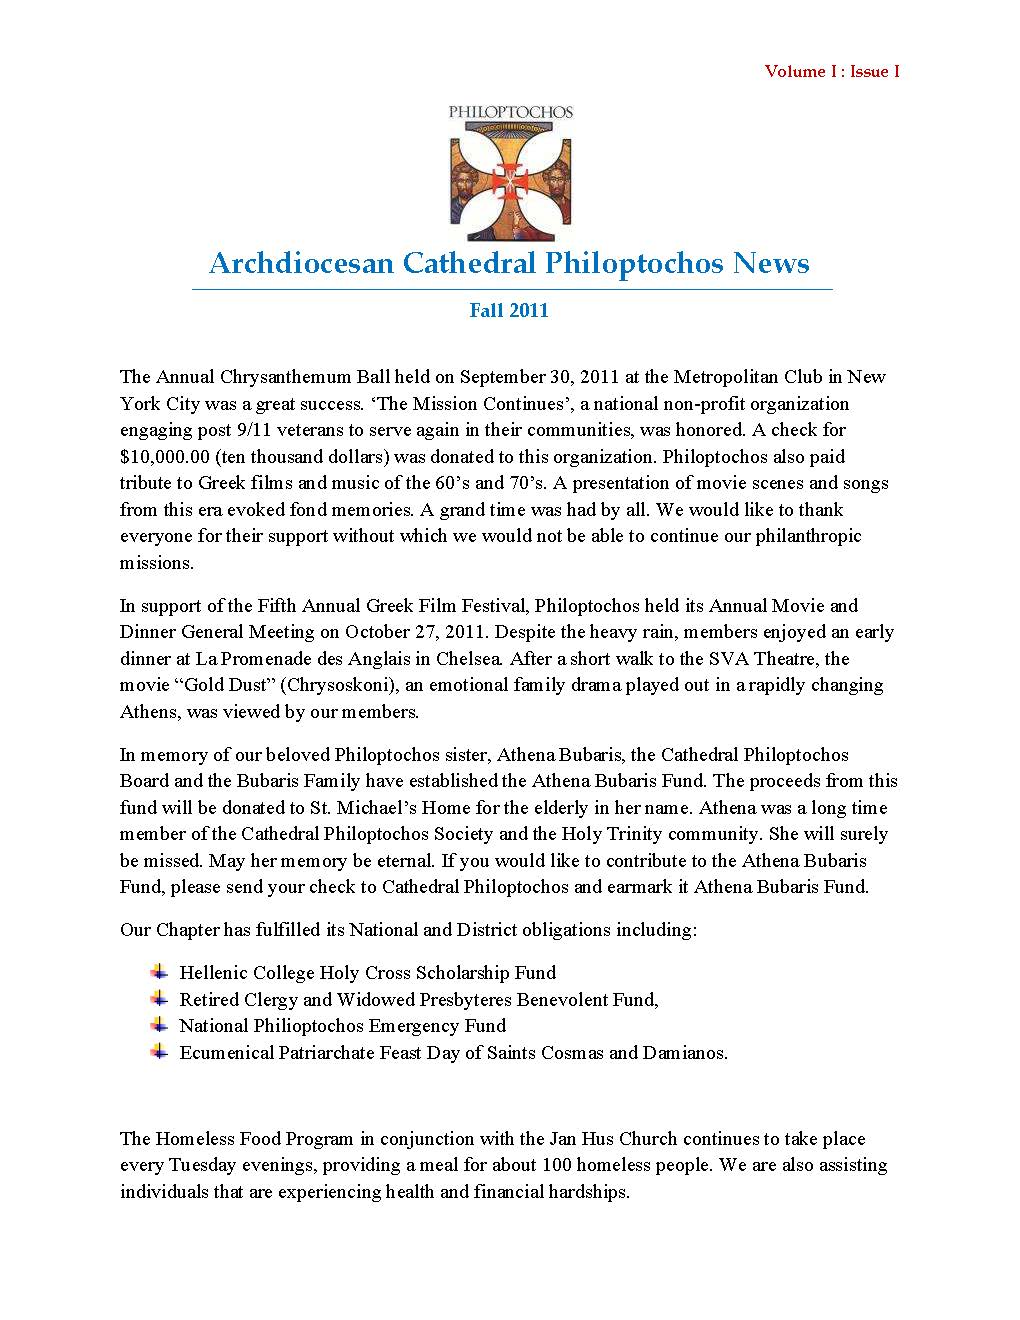 B - Fall 2011 Newsletter_Page_1.jpg